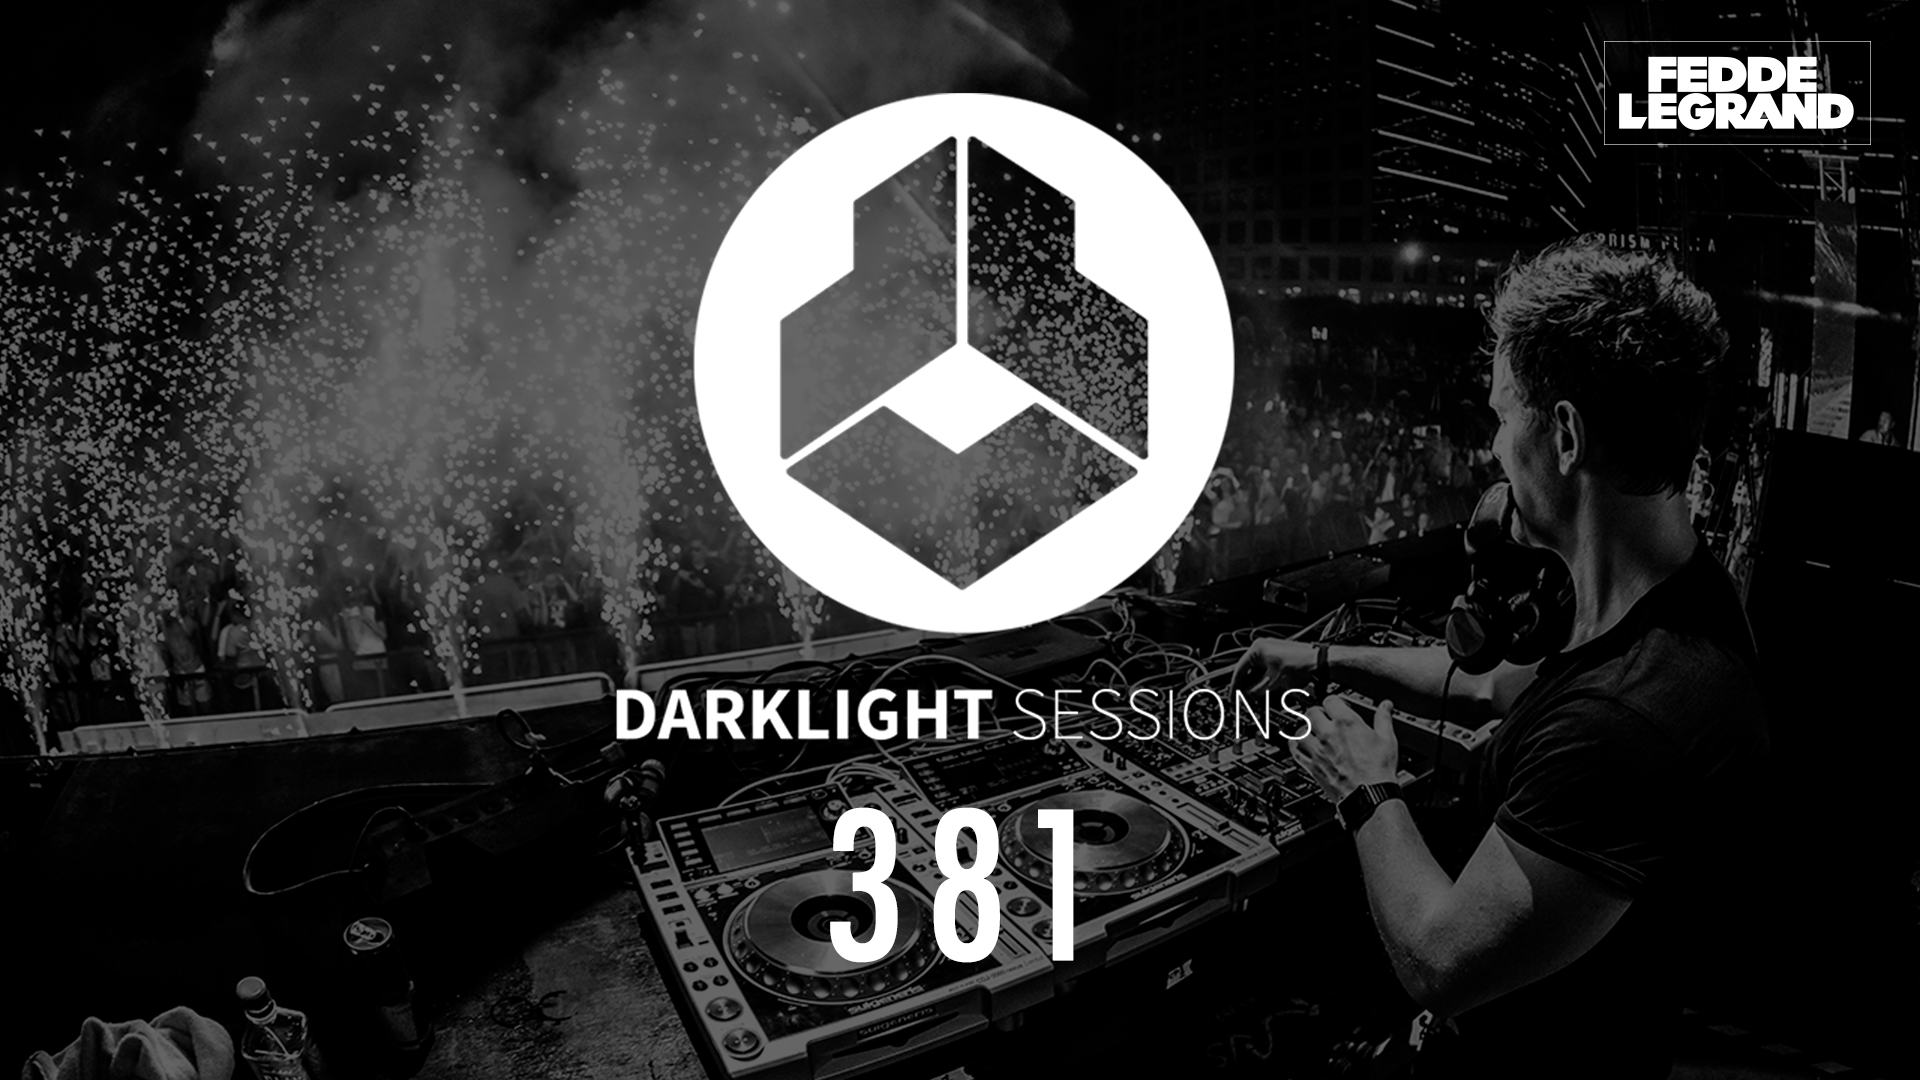 Darklight Sessions 381